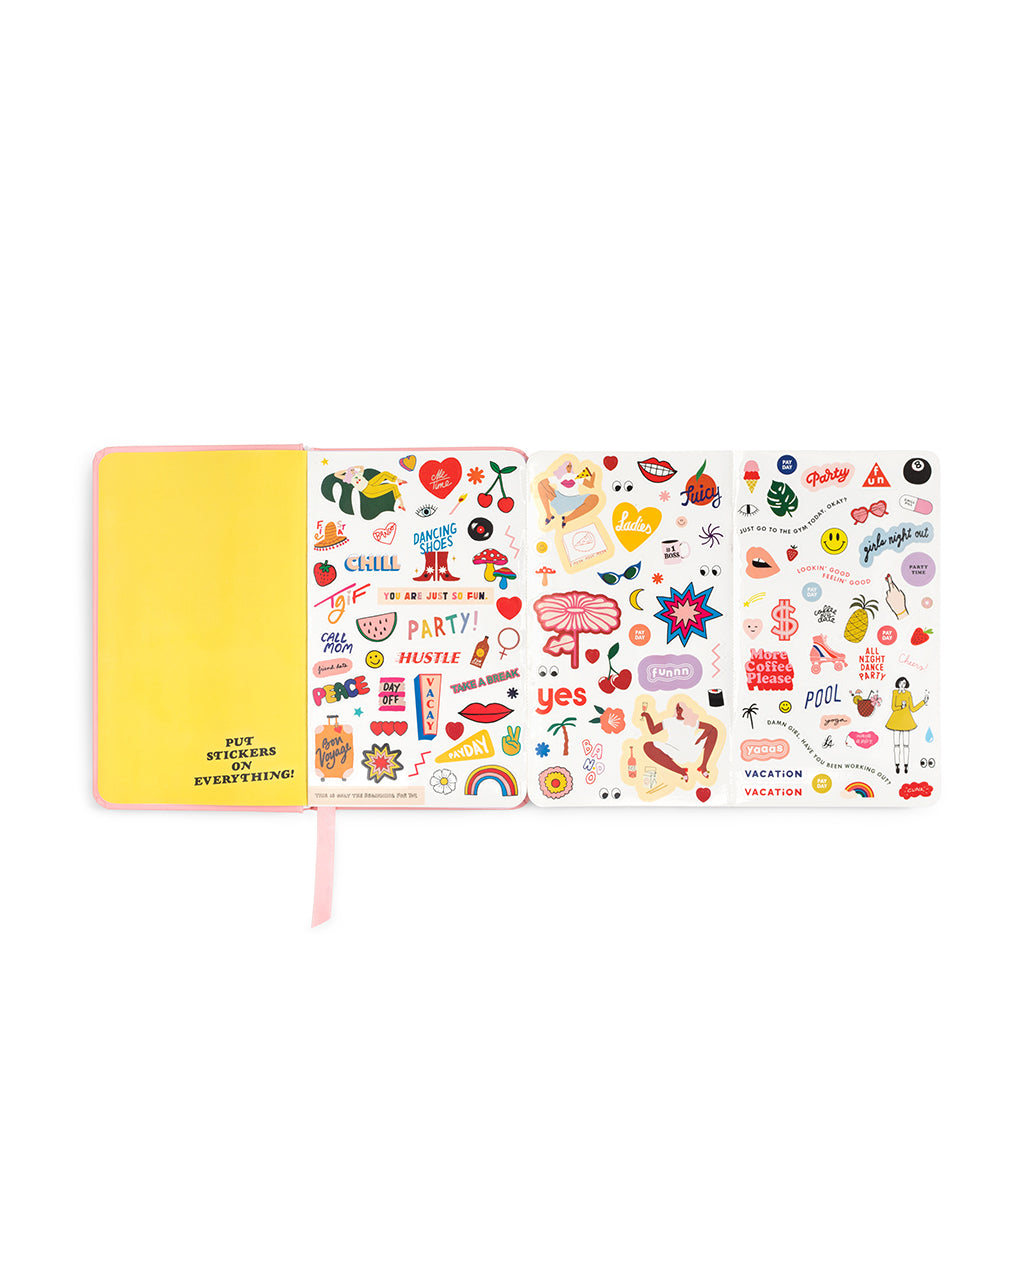 2019 classic 12 month annual planner bellini by ban do planner